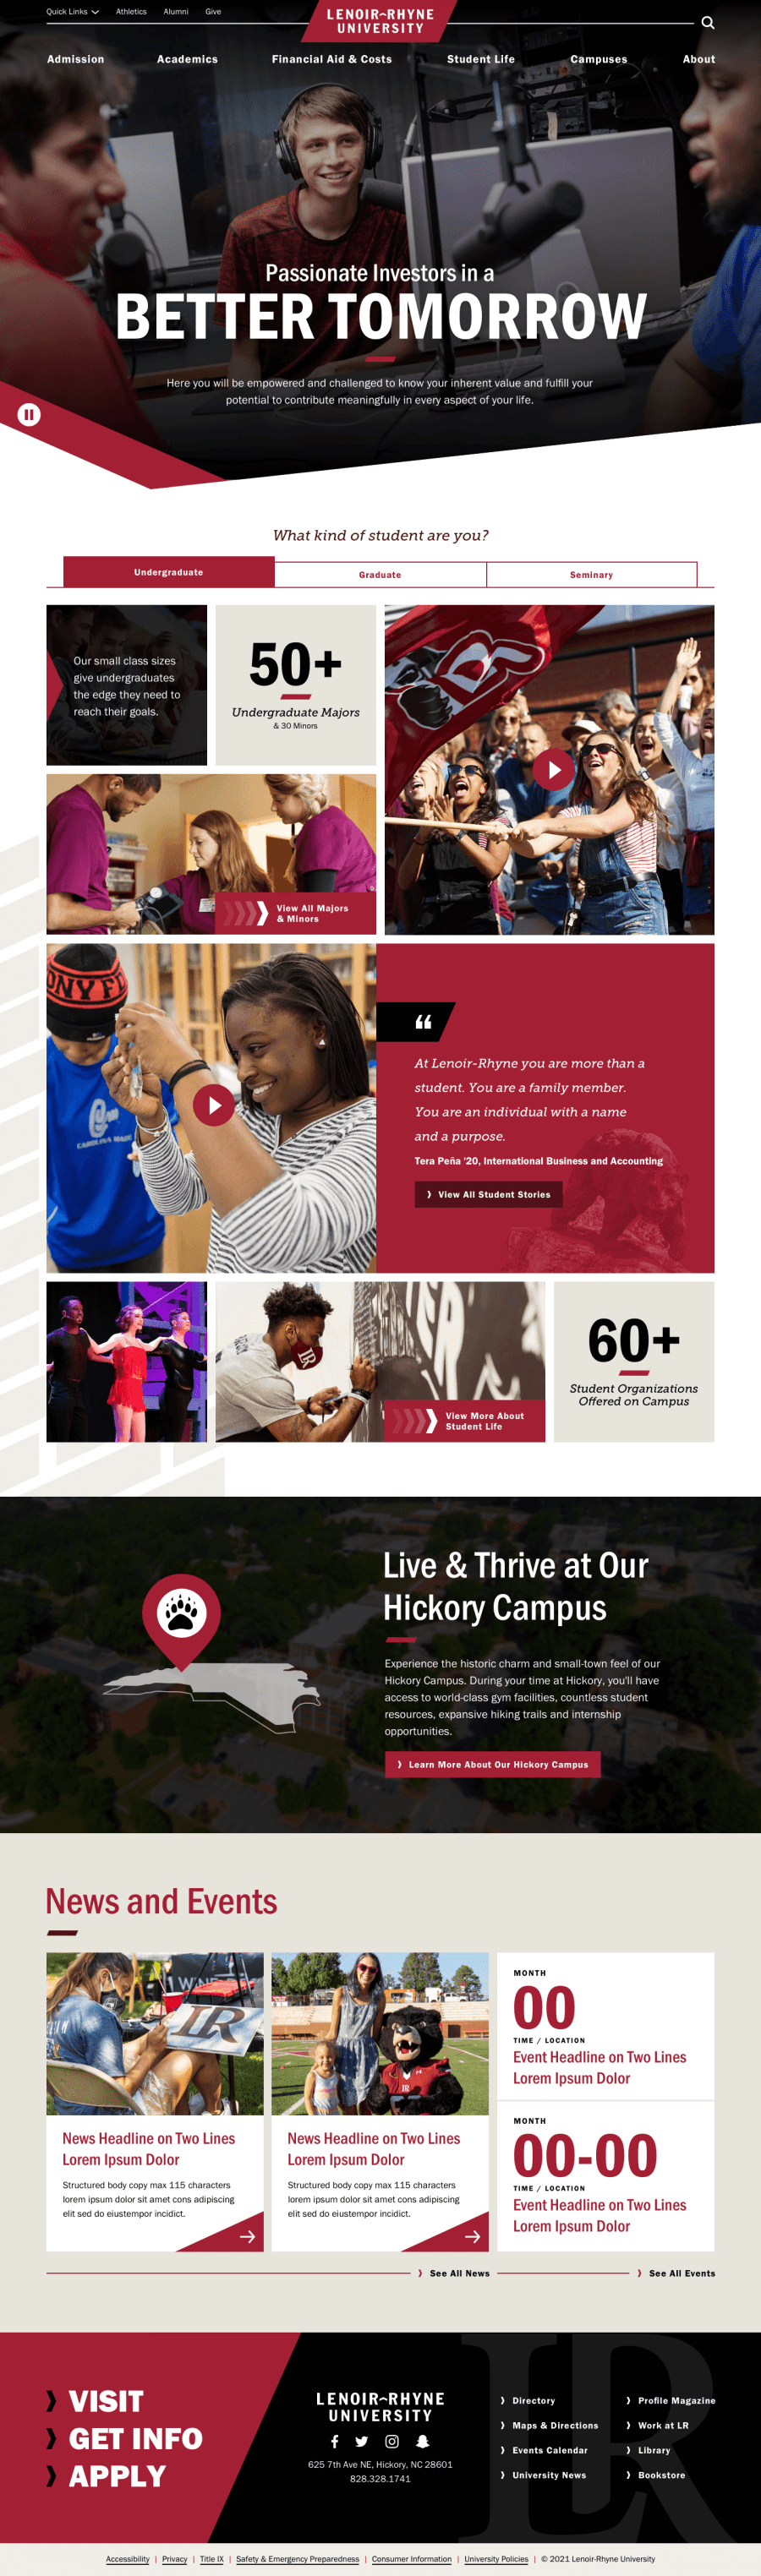 Screenshot of new homepage design showing video and images of students